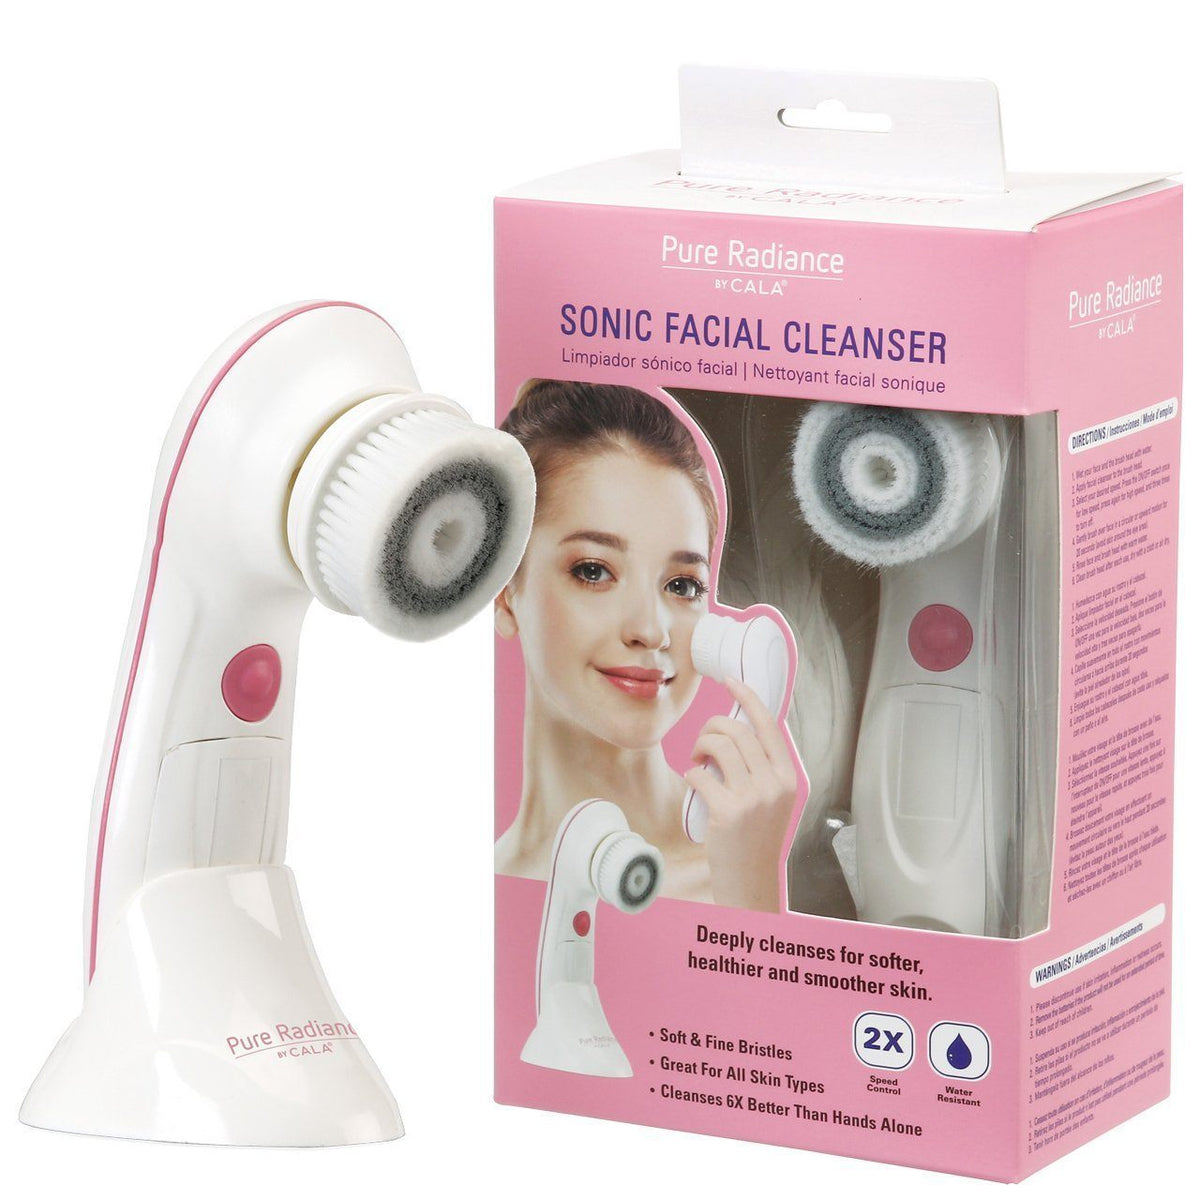 Cala Sonic Facial Cleanser #67502